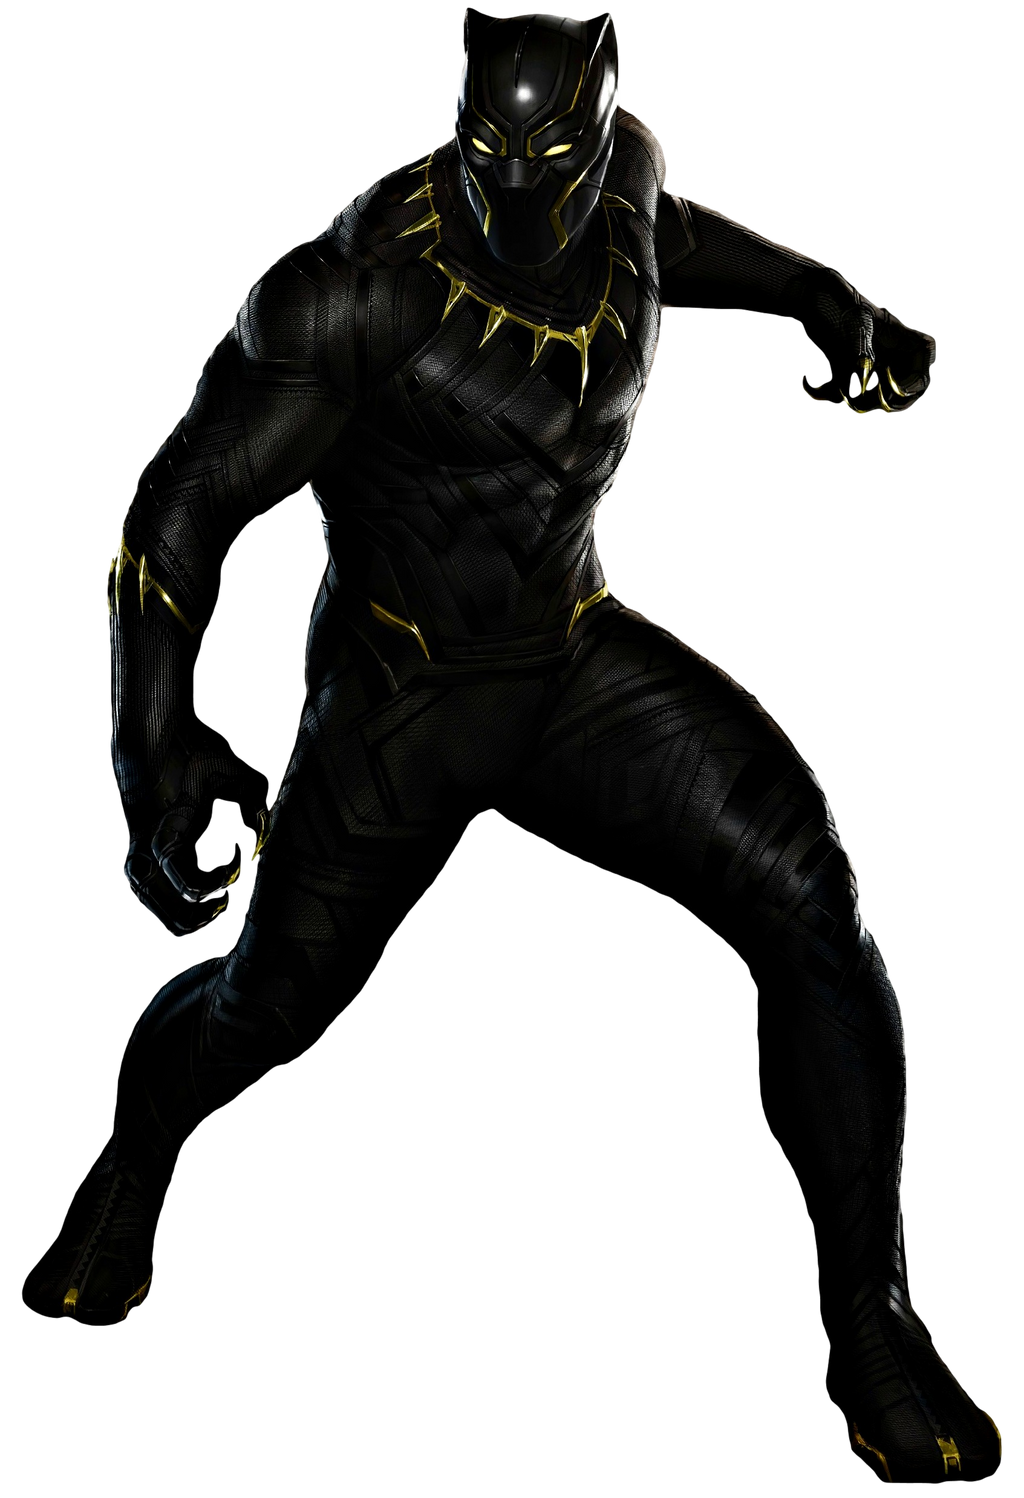 Black Panther - Transparent Background! by Camo-Flauge on ...